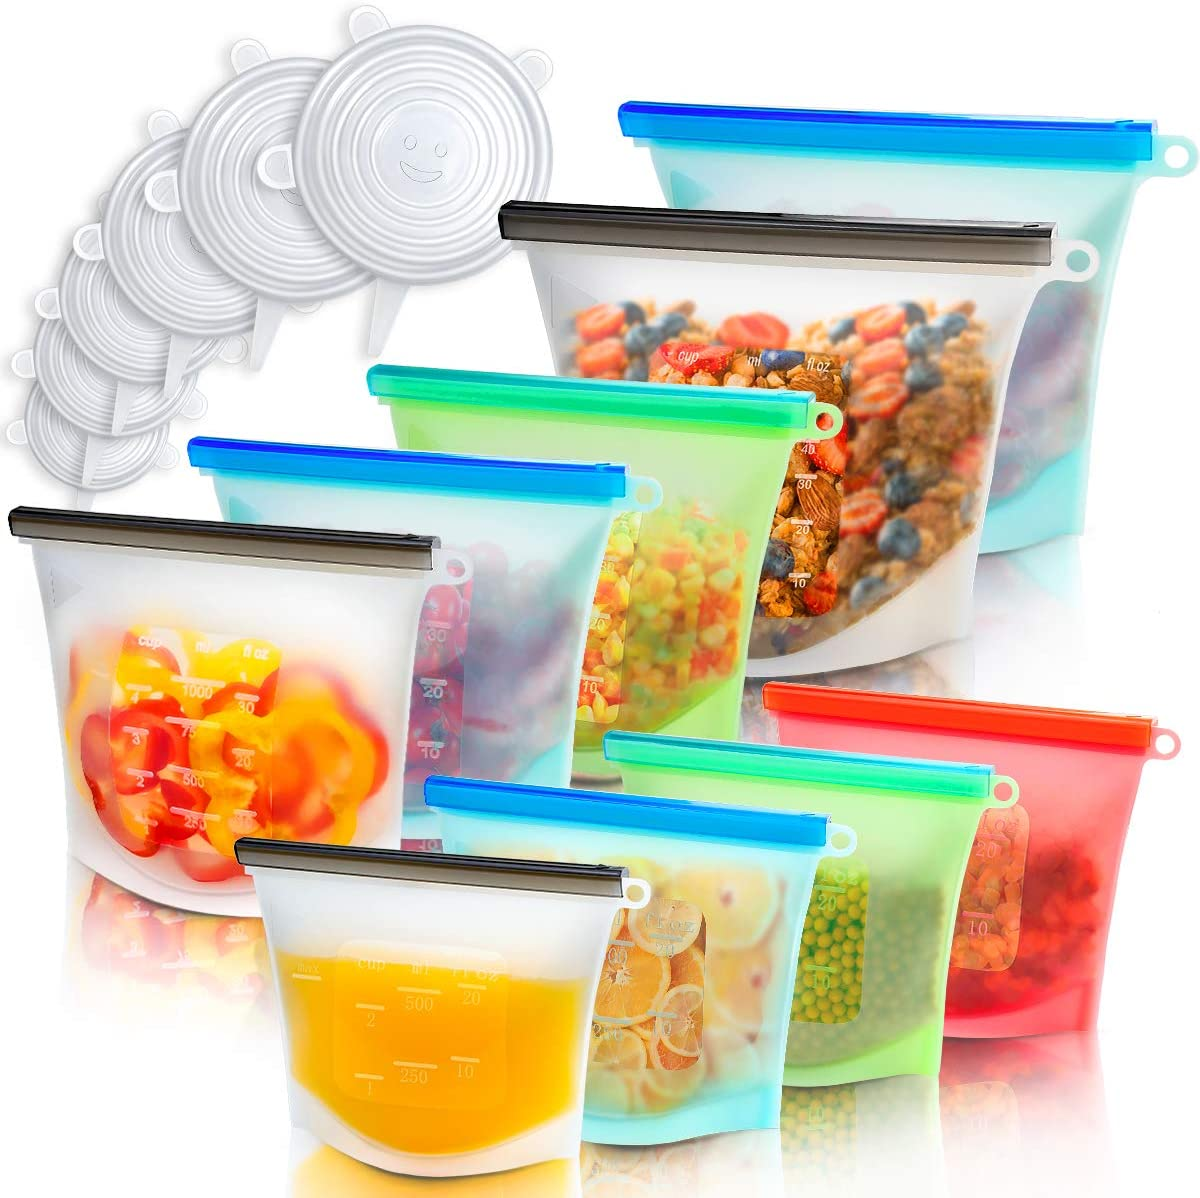 Reusable Food Bags(9 Pack) & Silicone Stretch Lids(6 Pack), Airtight Seal Food Storage Wrap Zip Top Silicone Containers for Vegetable, Liquid, Snack, Meat, Sandwich,Vide Lunch (bags+lids)